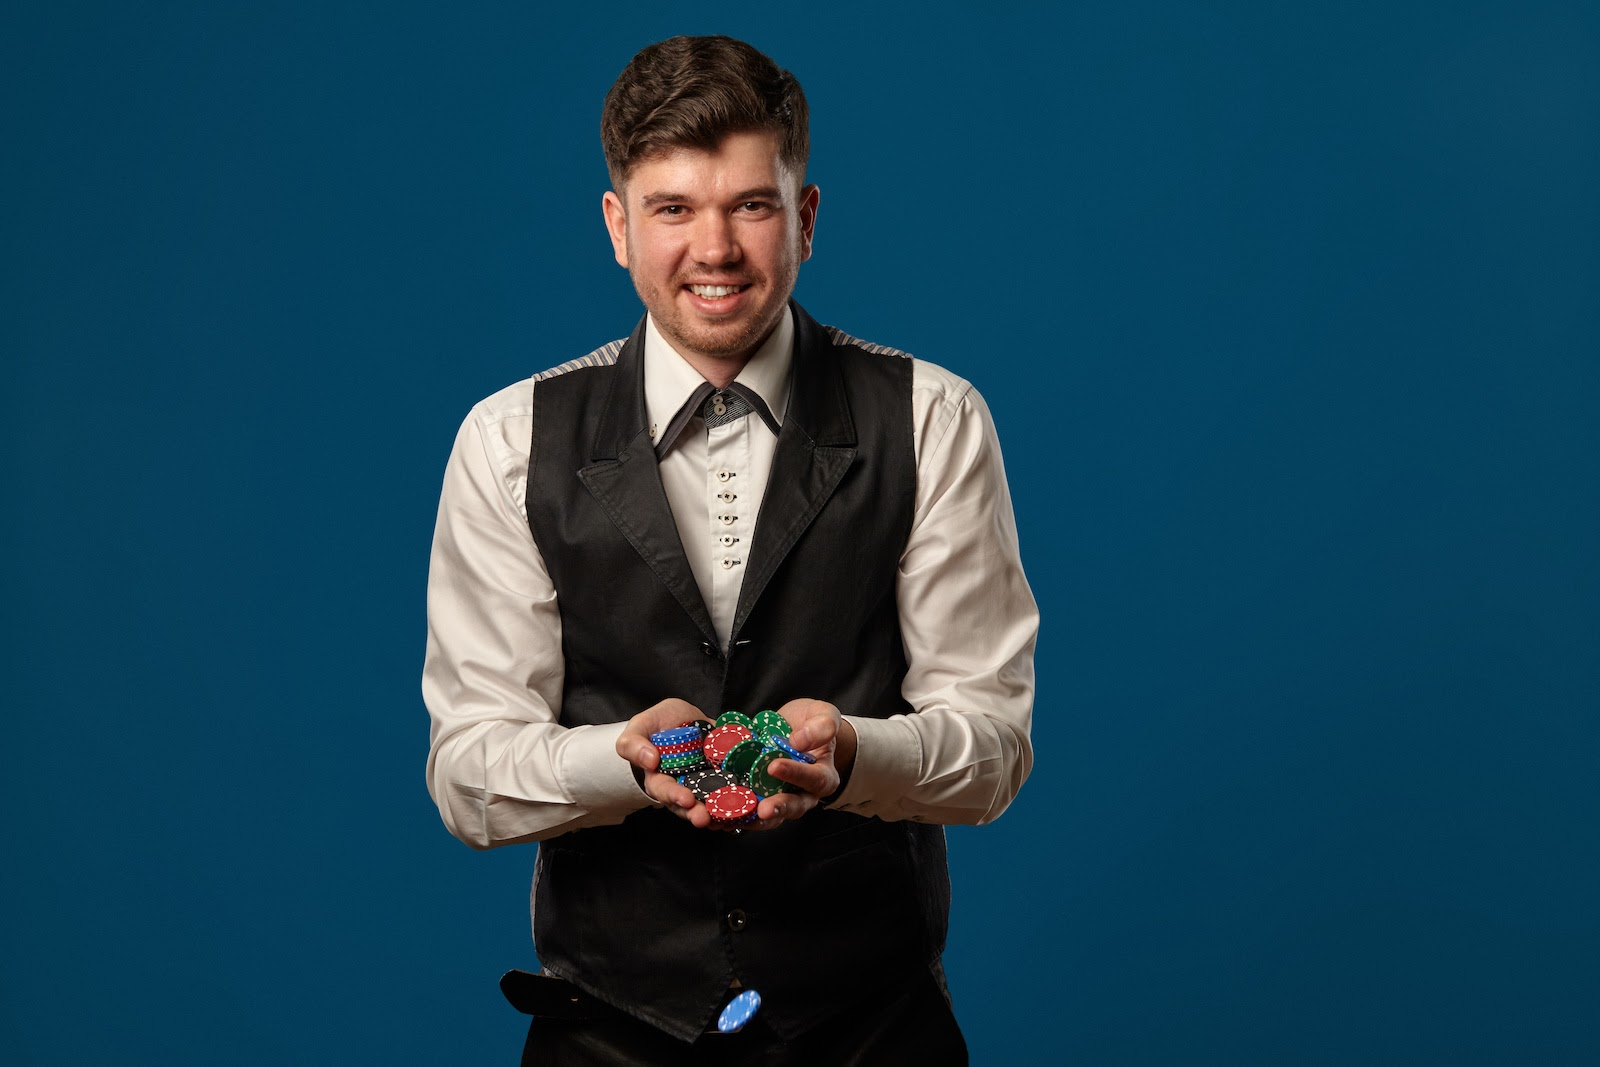 Virtual event ideas: A man holds poker chips, representing a virtual casino night